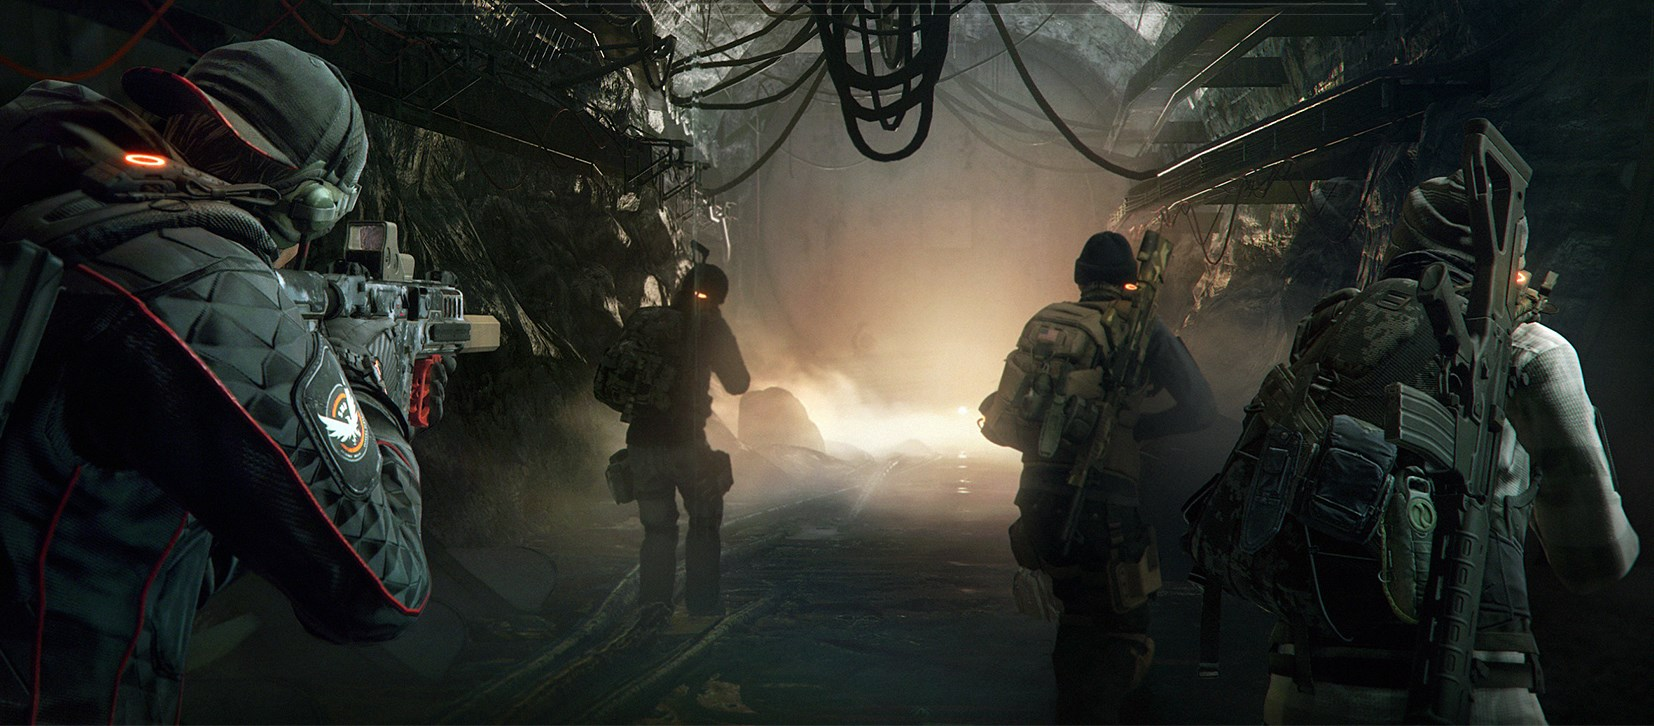 Ubisoft reveals major changes coming to The Division in the 1.4 update